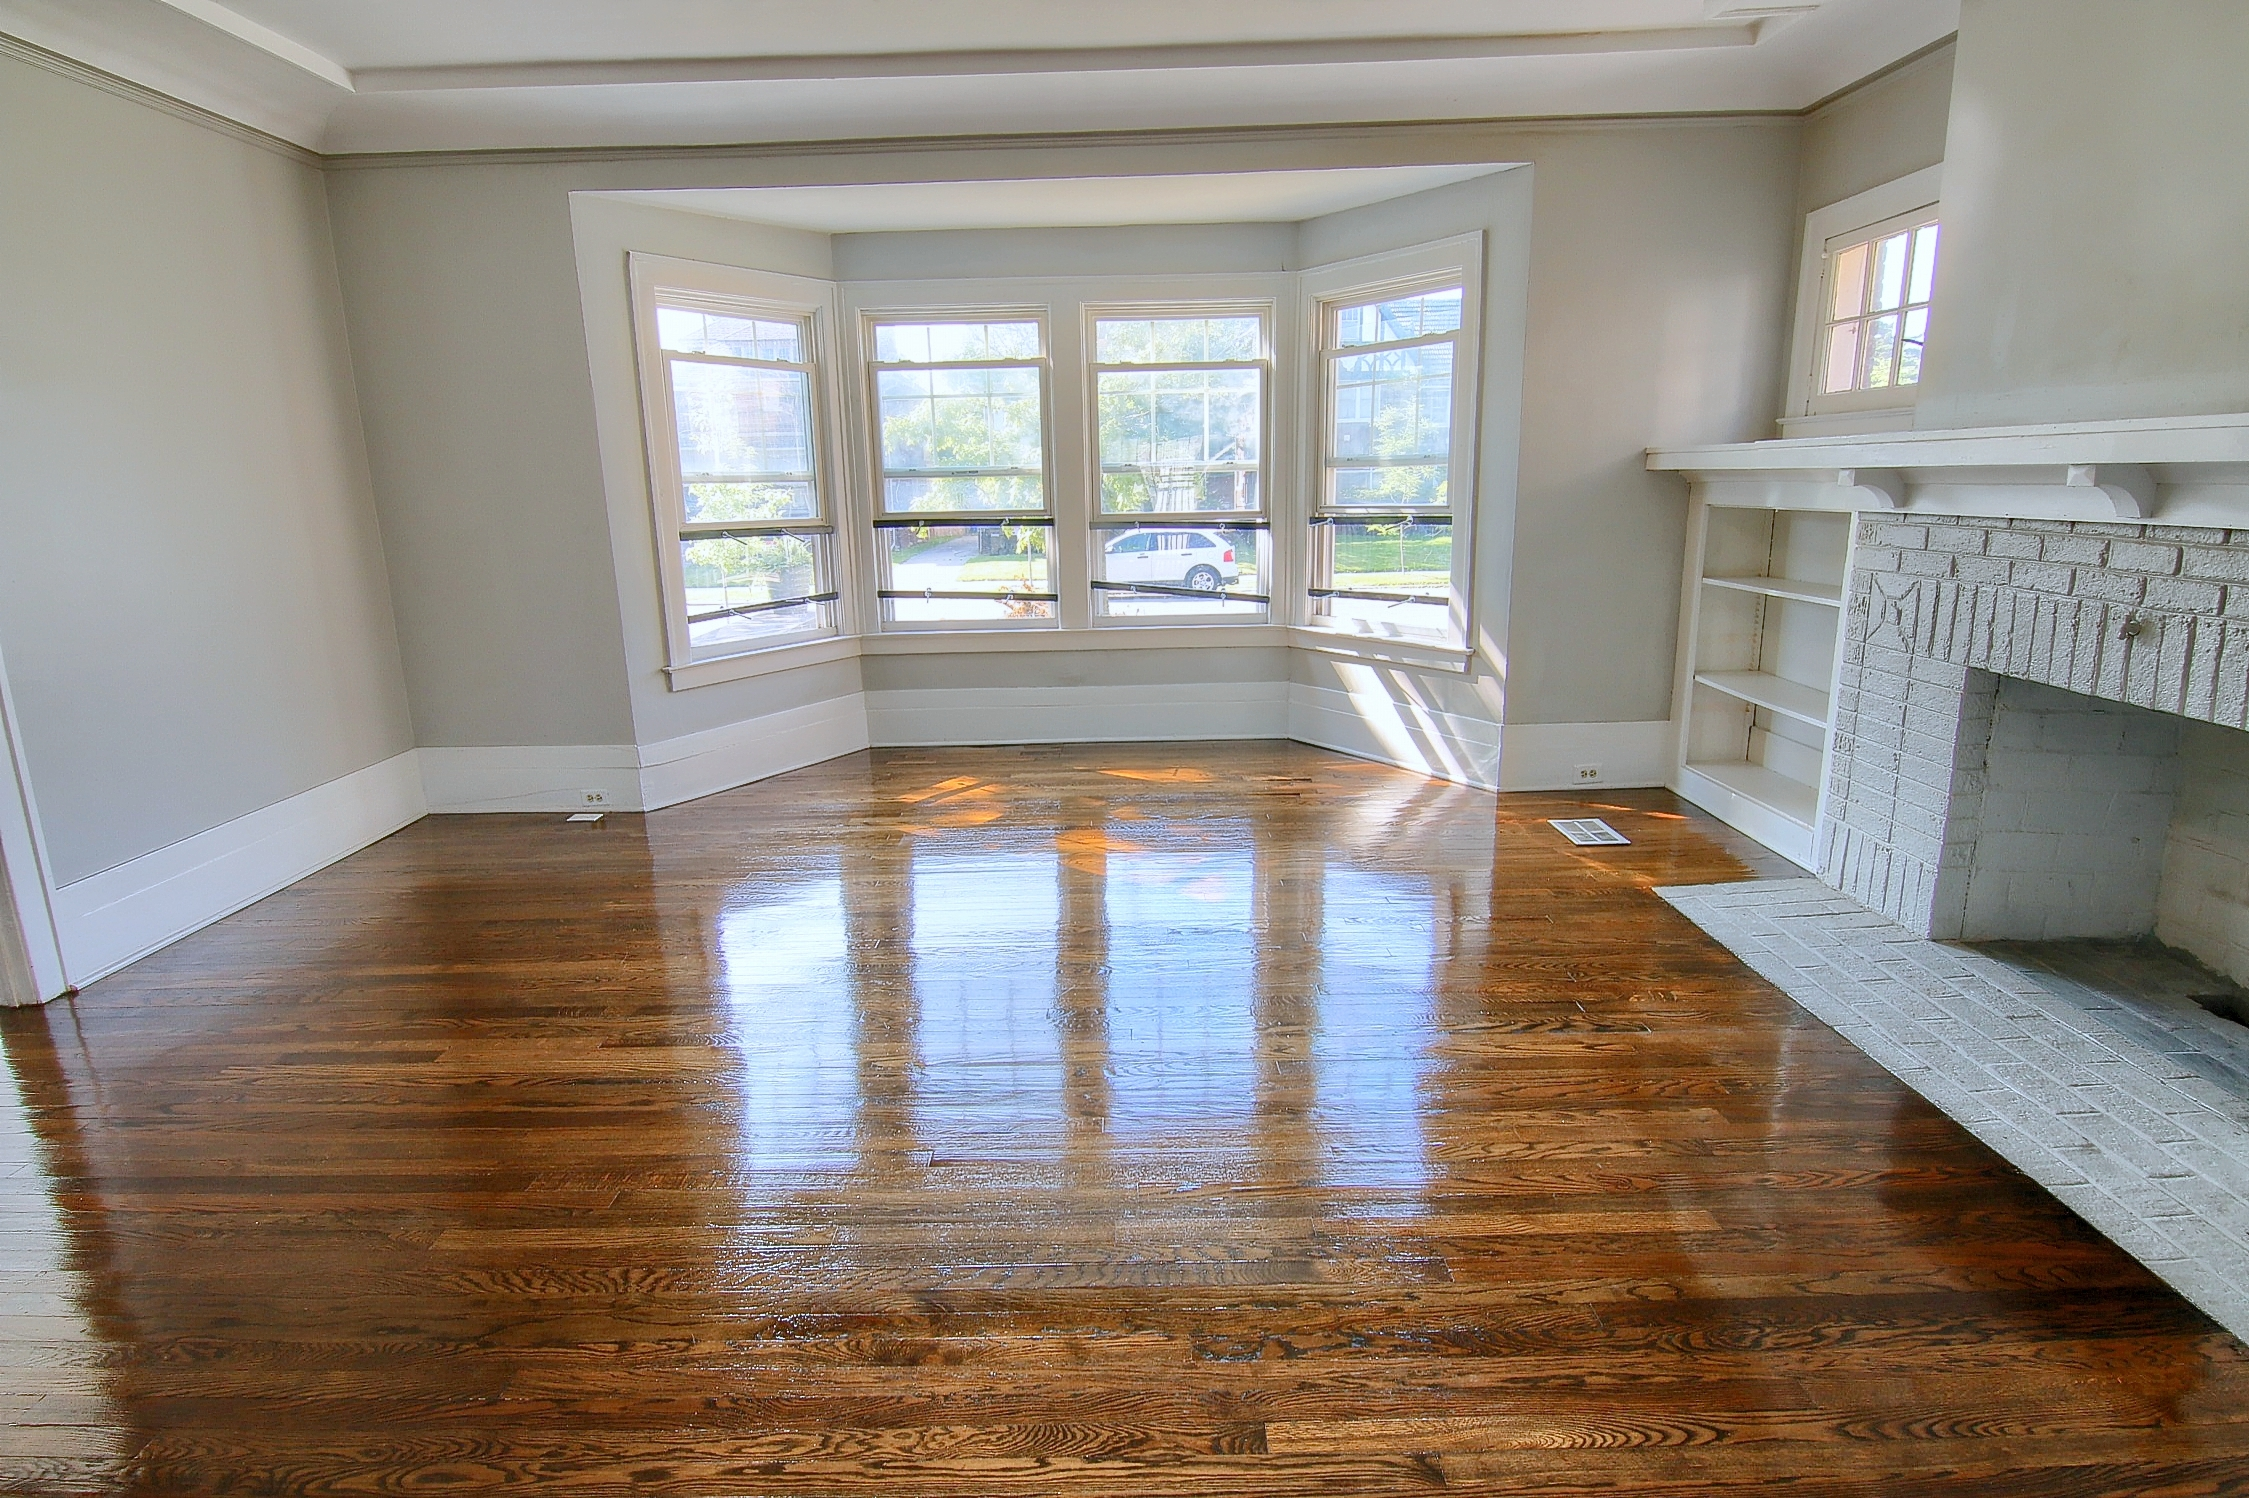 11-Family Room 2nd View.jpg